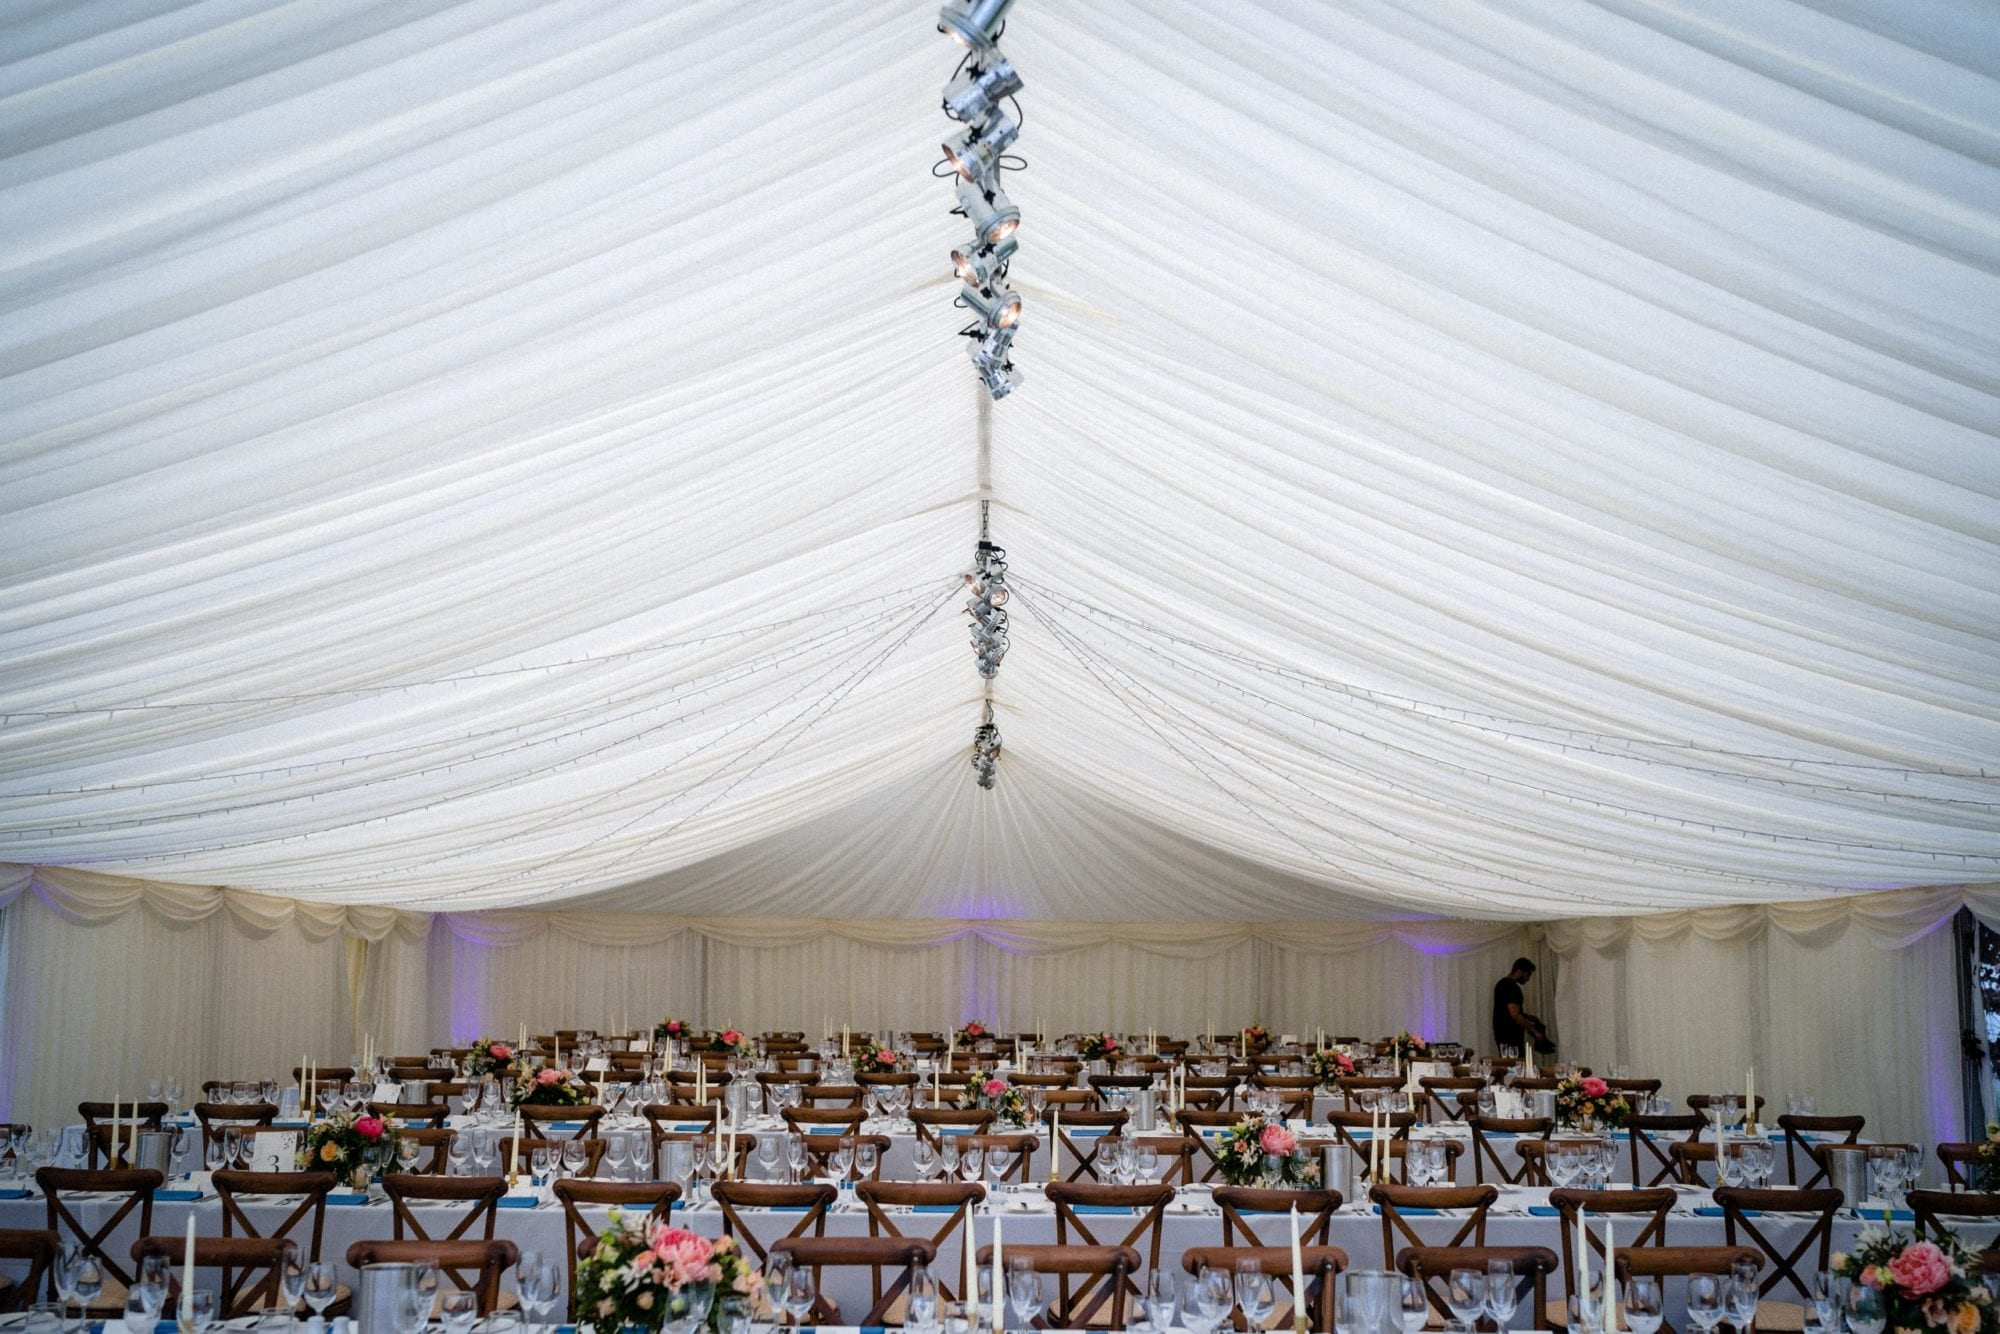 Marquee wedding planner